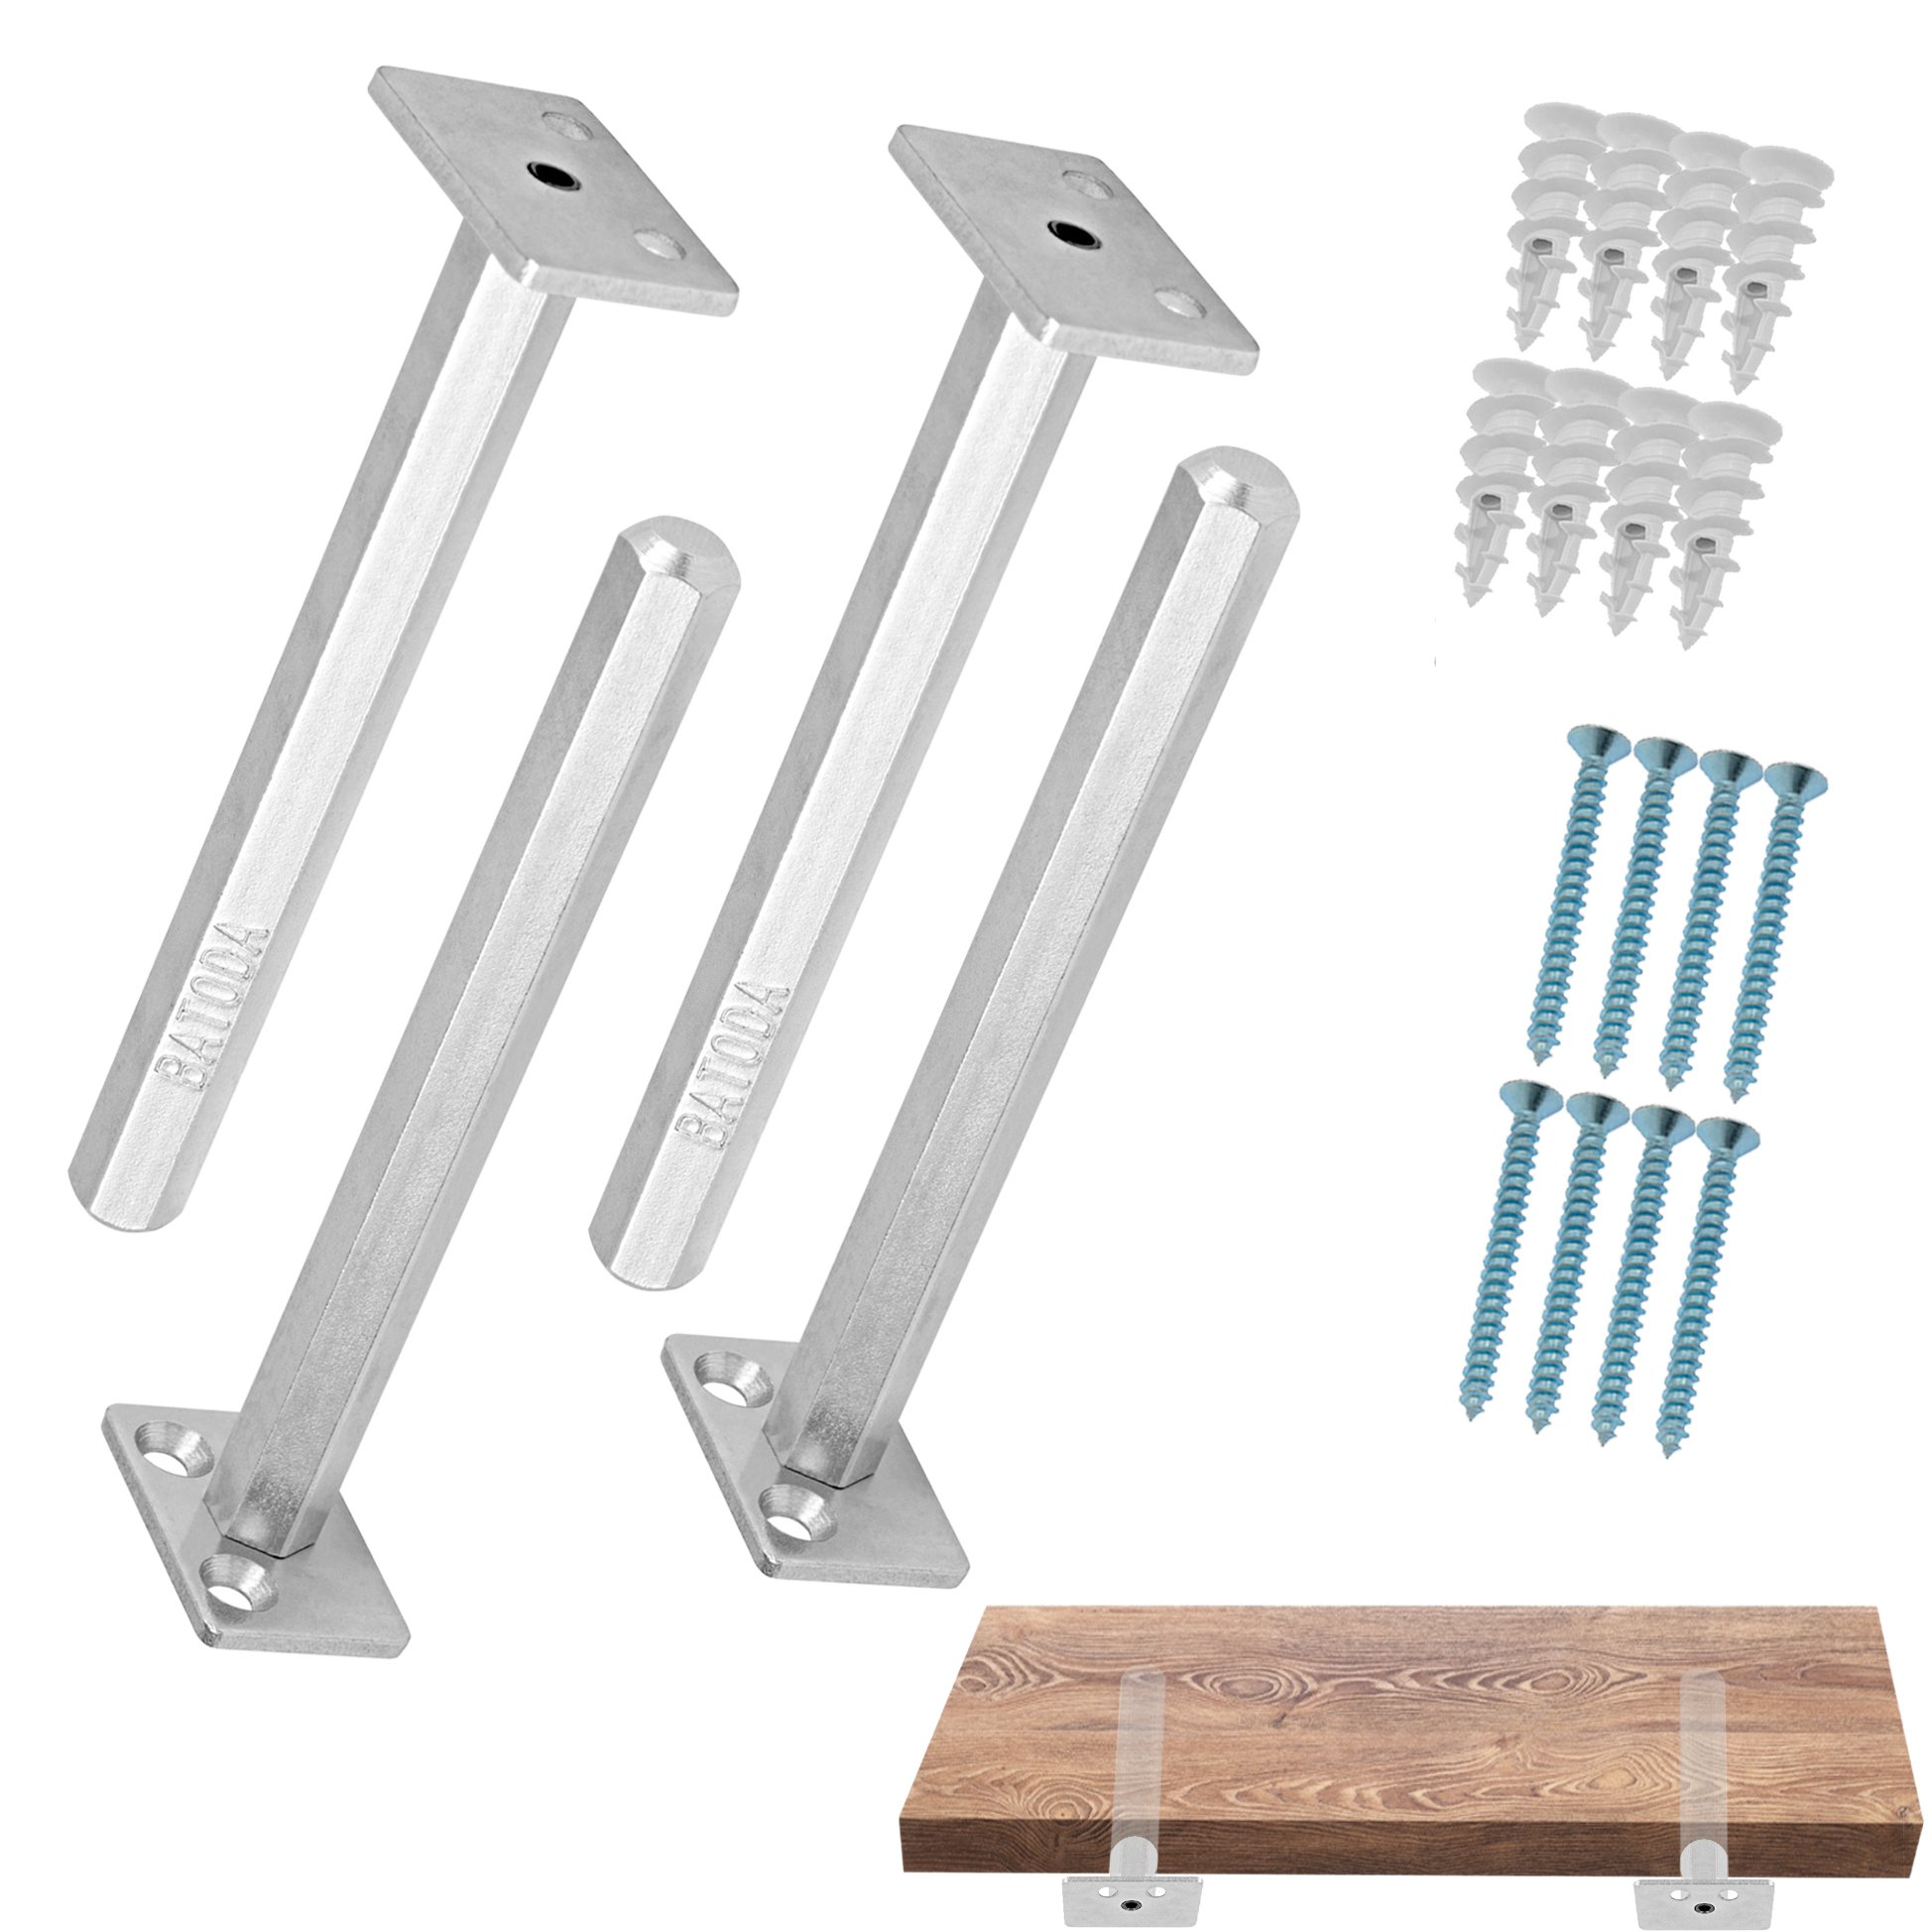 Floating Shelf Bracket (4 pcs Galvanized Steel) - Blind Shelf Supports - Hidden Brackets for Floating Wood Shelves - Concealed Blind shelf Support – Screws and Wall plugs Included (Shelf NOT Included)